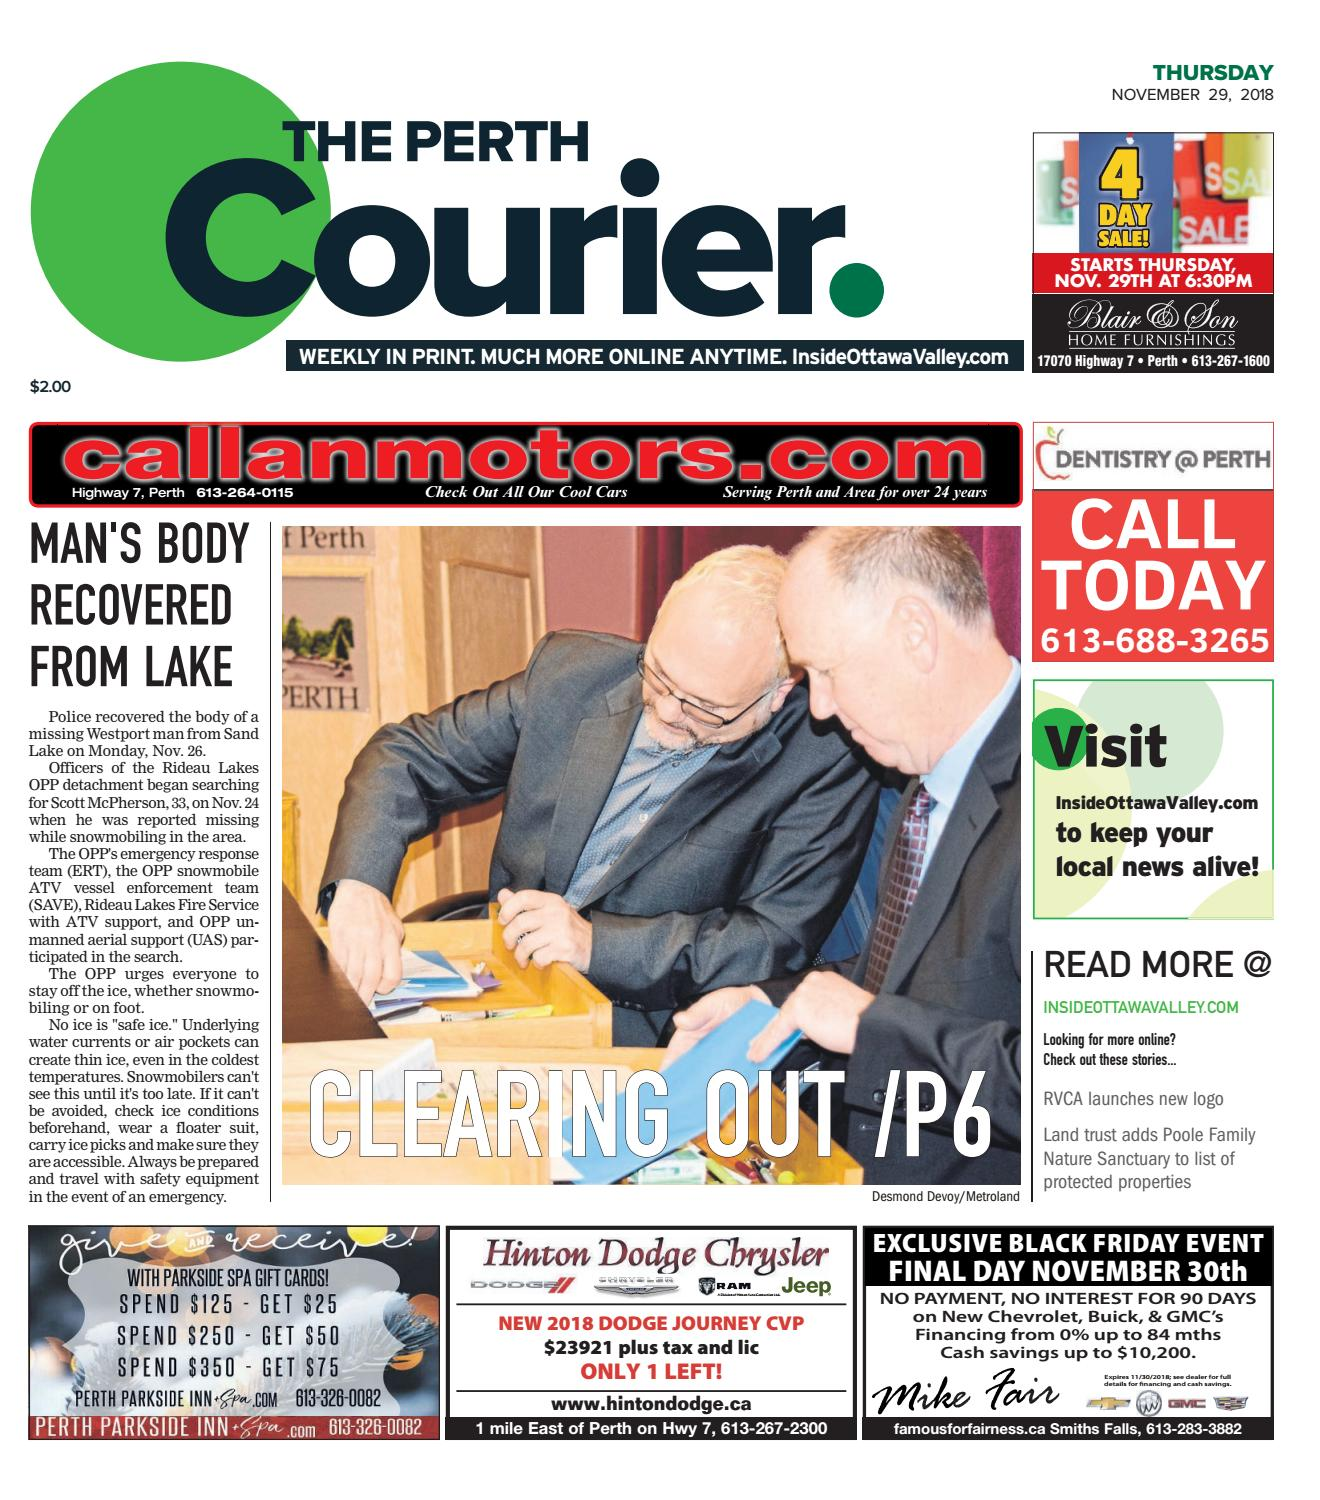 5d0cb1162 OTV_P_A_20181129 by Metroland East - The Perth Courier - issuu